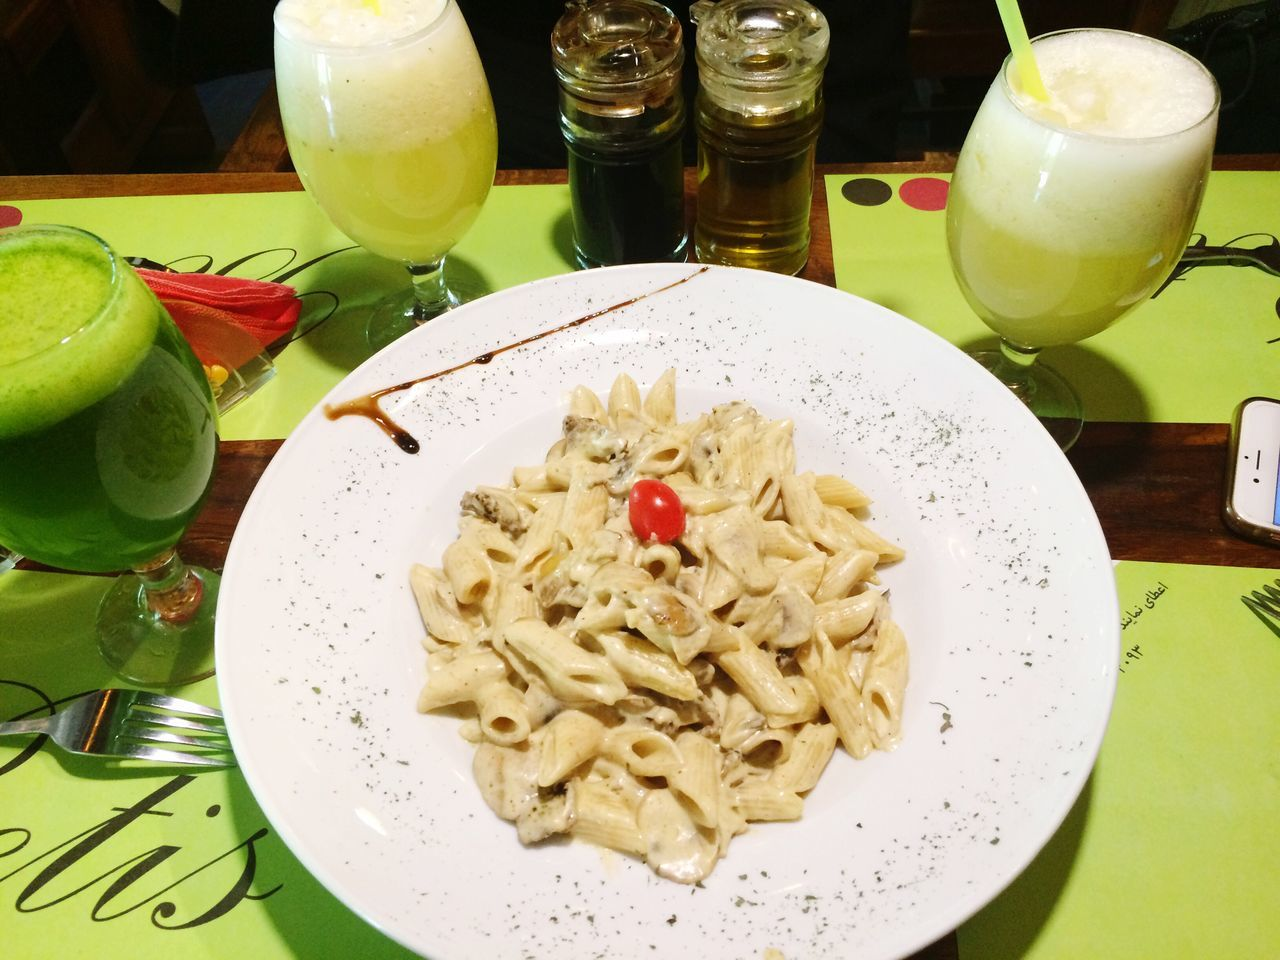 Pasta Betis Beef Alfredo Tehran Tehran, Iran Check This Out Hanging Out Friends Friendship Enjoying Life Yummy Pastalover Shahrakgharb Shahrak_e_gharb Mojito! Mojito Time Lemonade